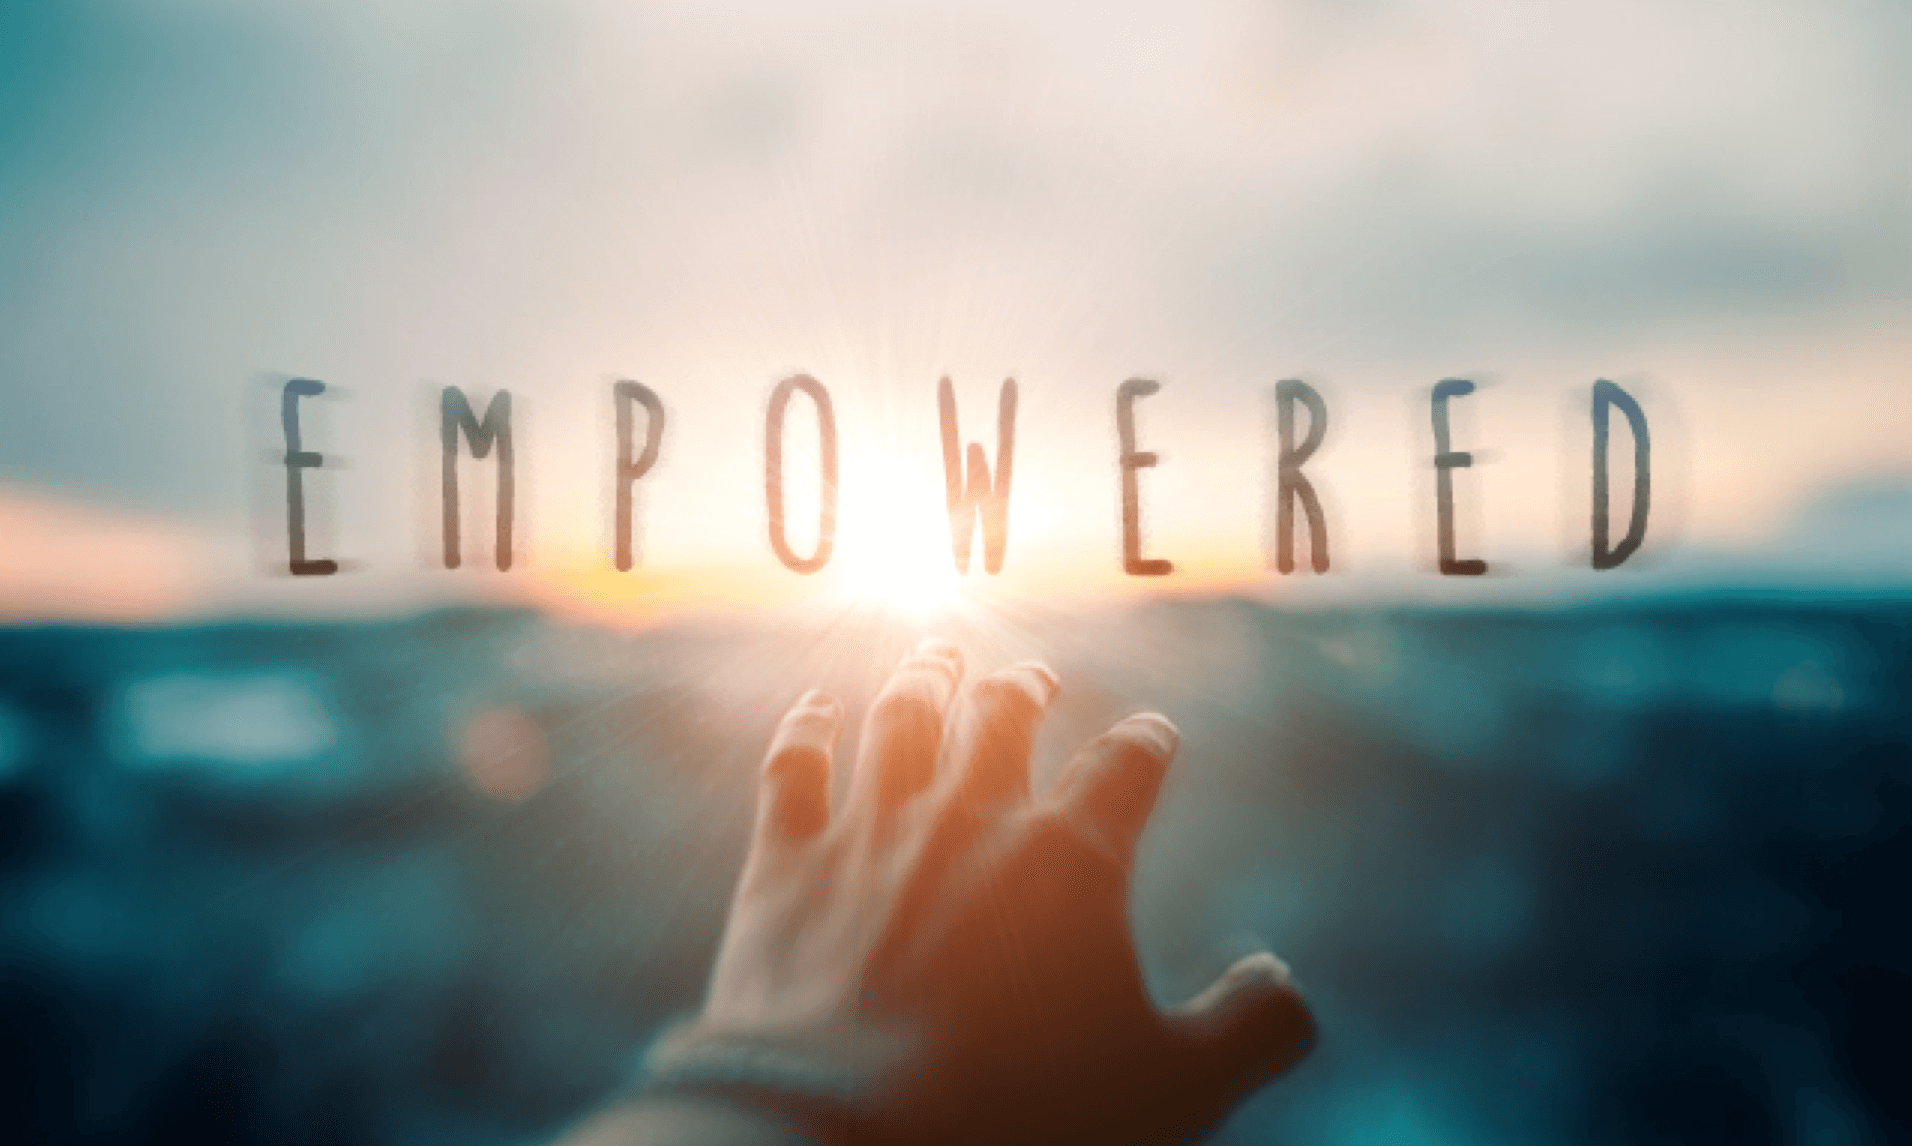 EMPOWERED Picture